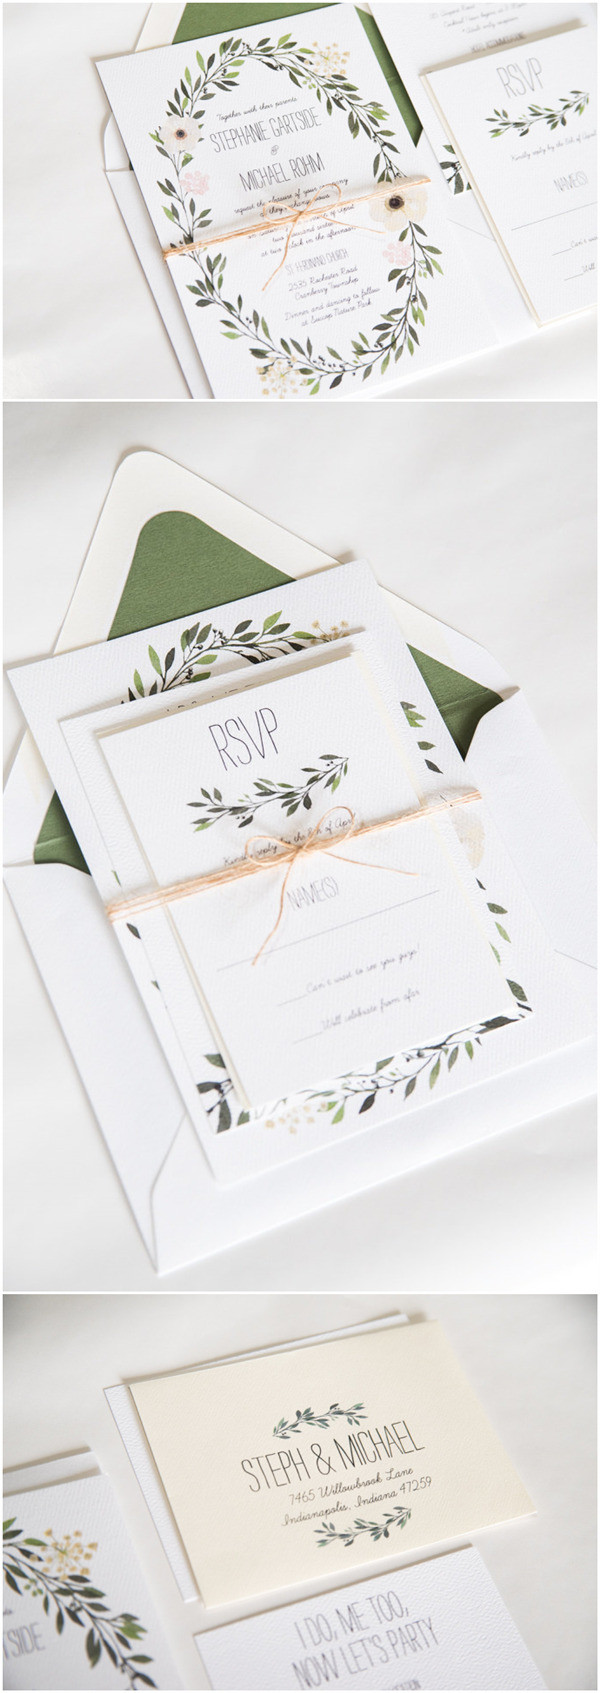 elegant green wedding invitations for 2017 trends